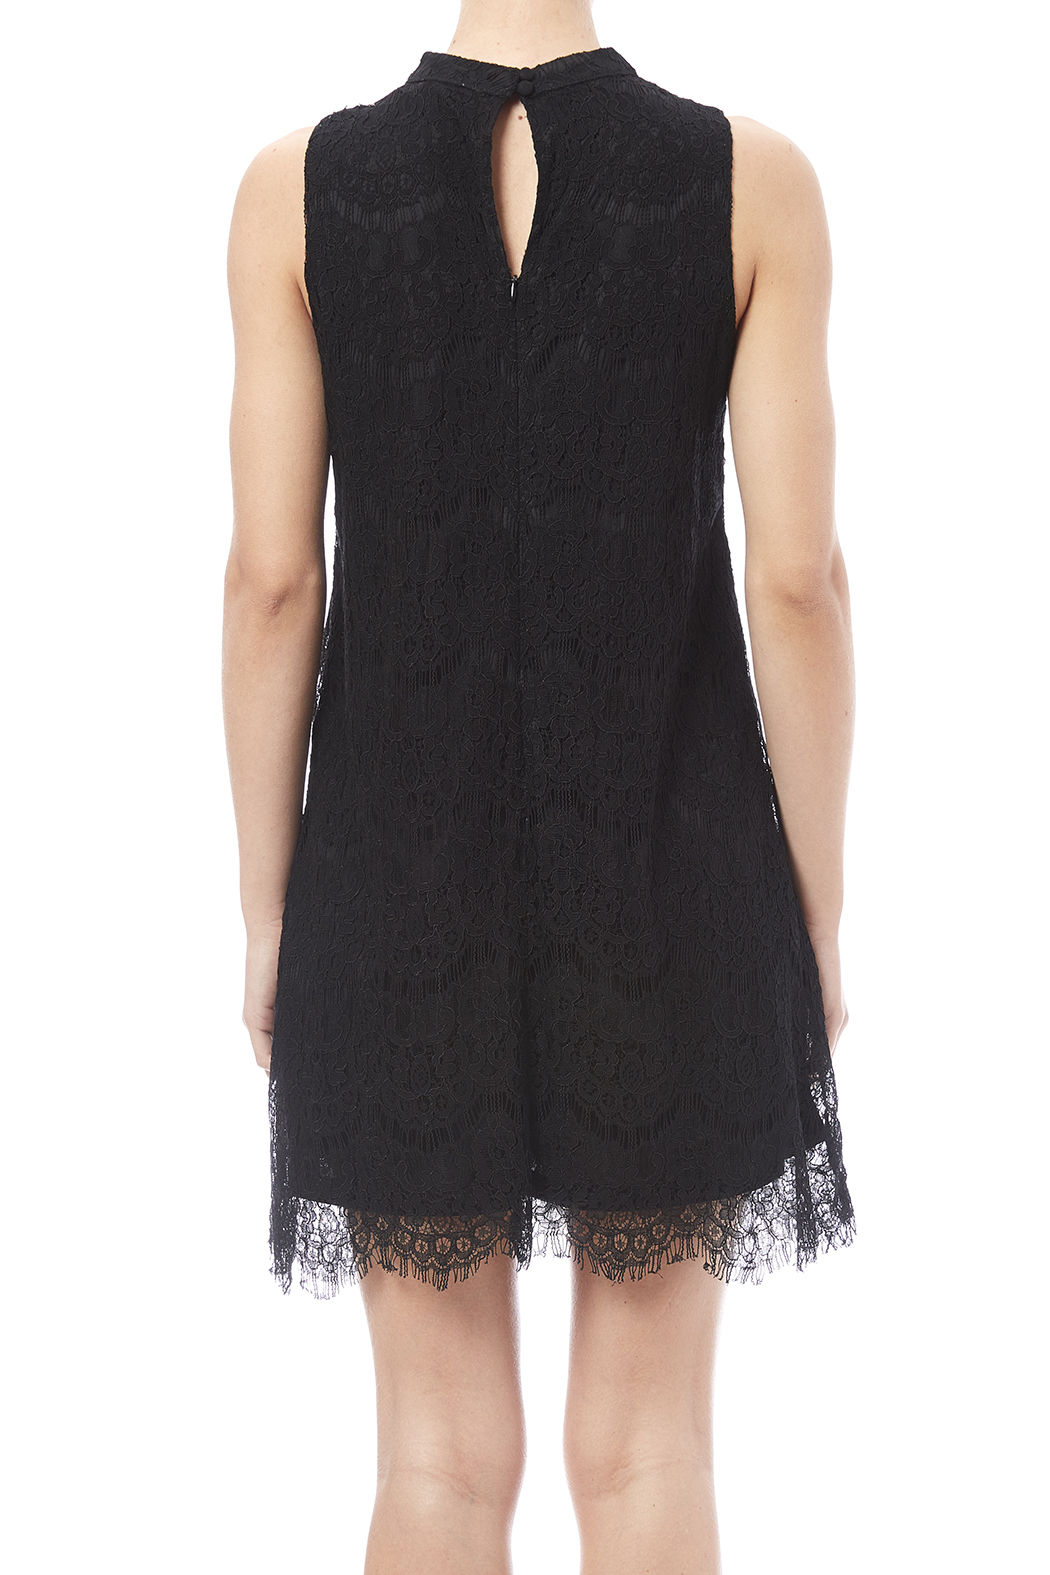 fashion on earth Lace Shift Dress - Back Cropped Image